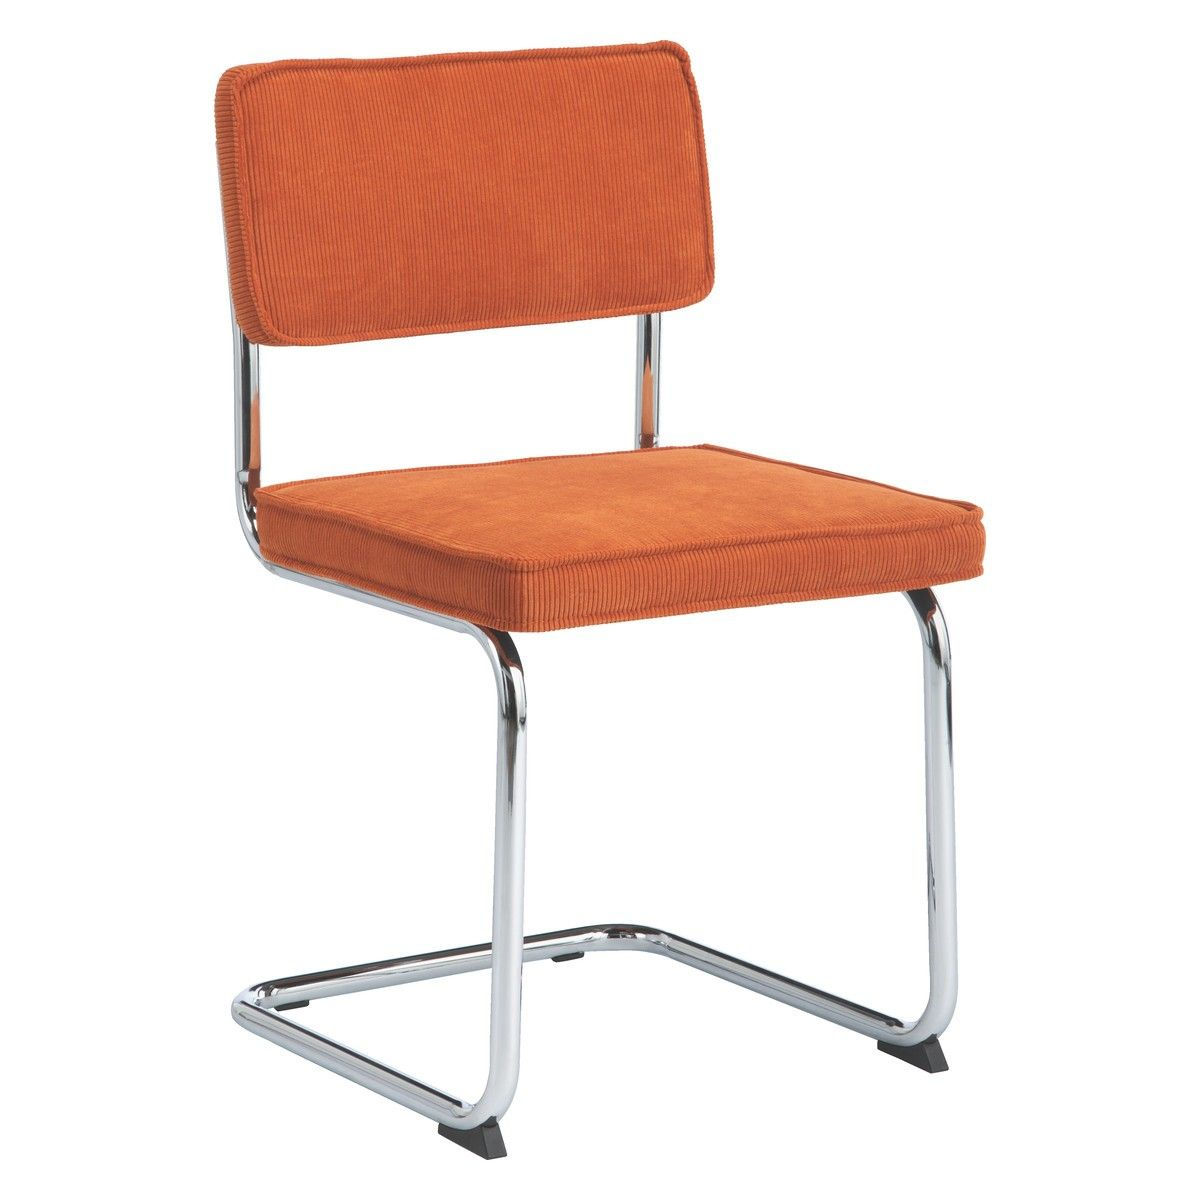 SEVILLA Orange Cantilevered Dining Chair